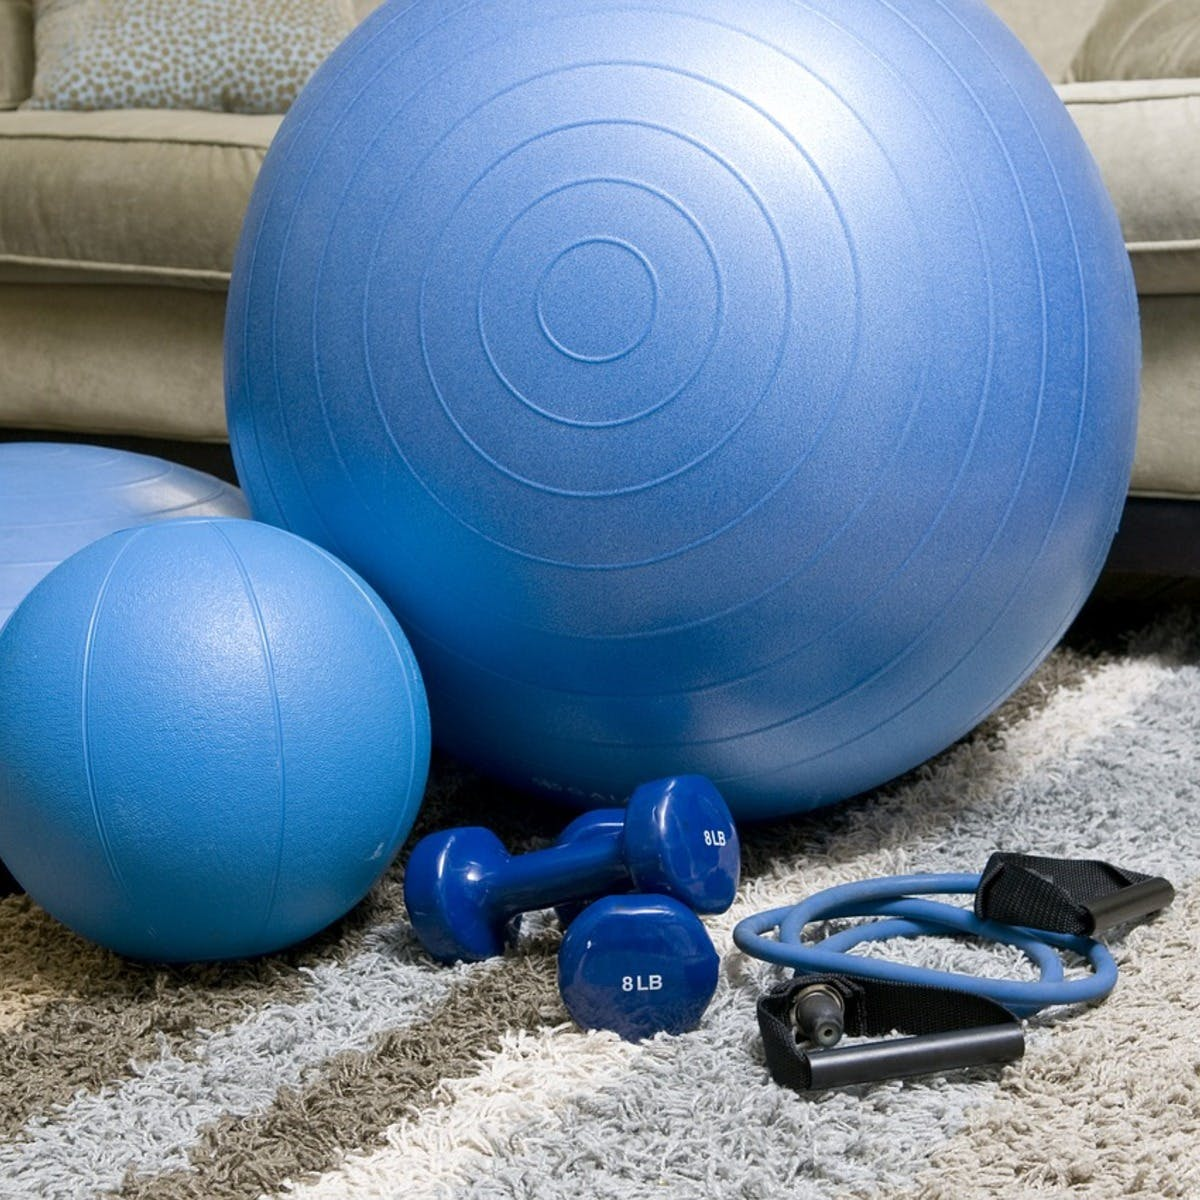 Managing Your Health: The Role of Physical Therapy and Exercise